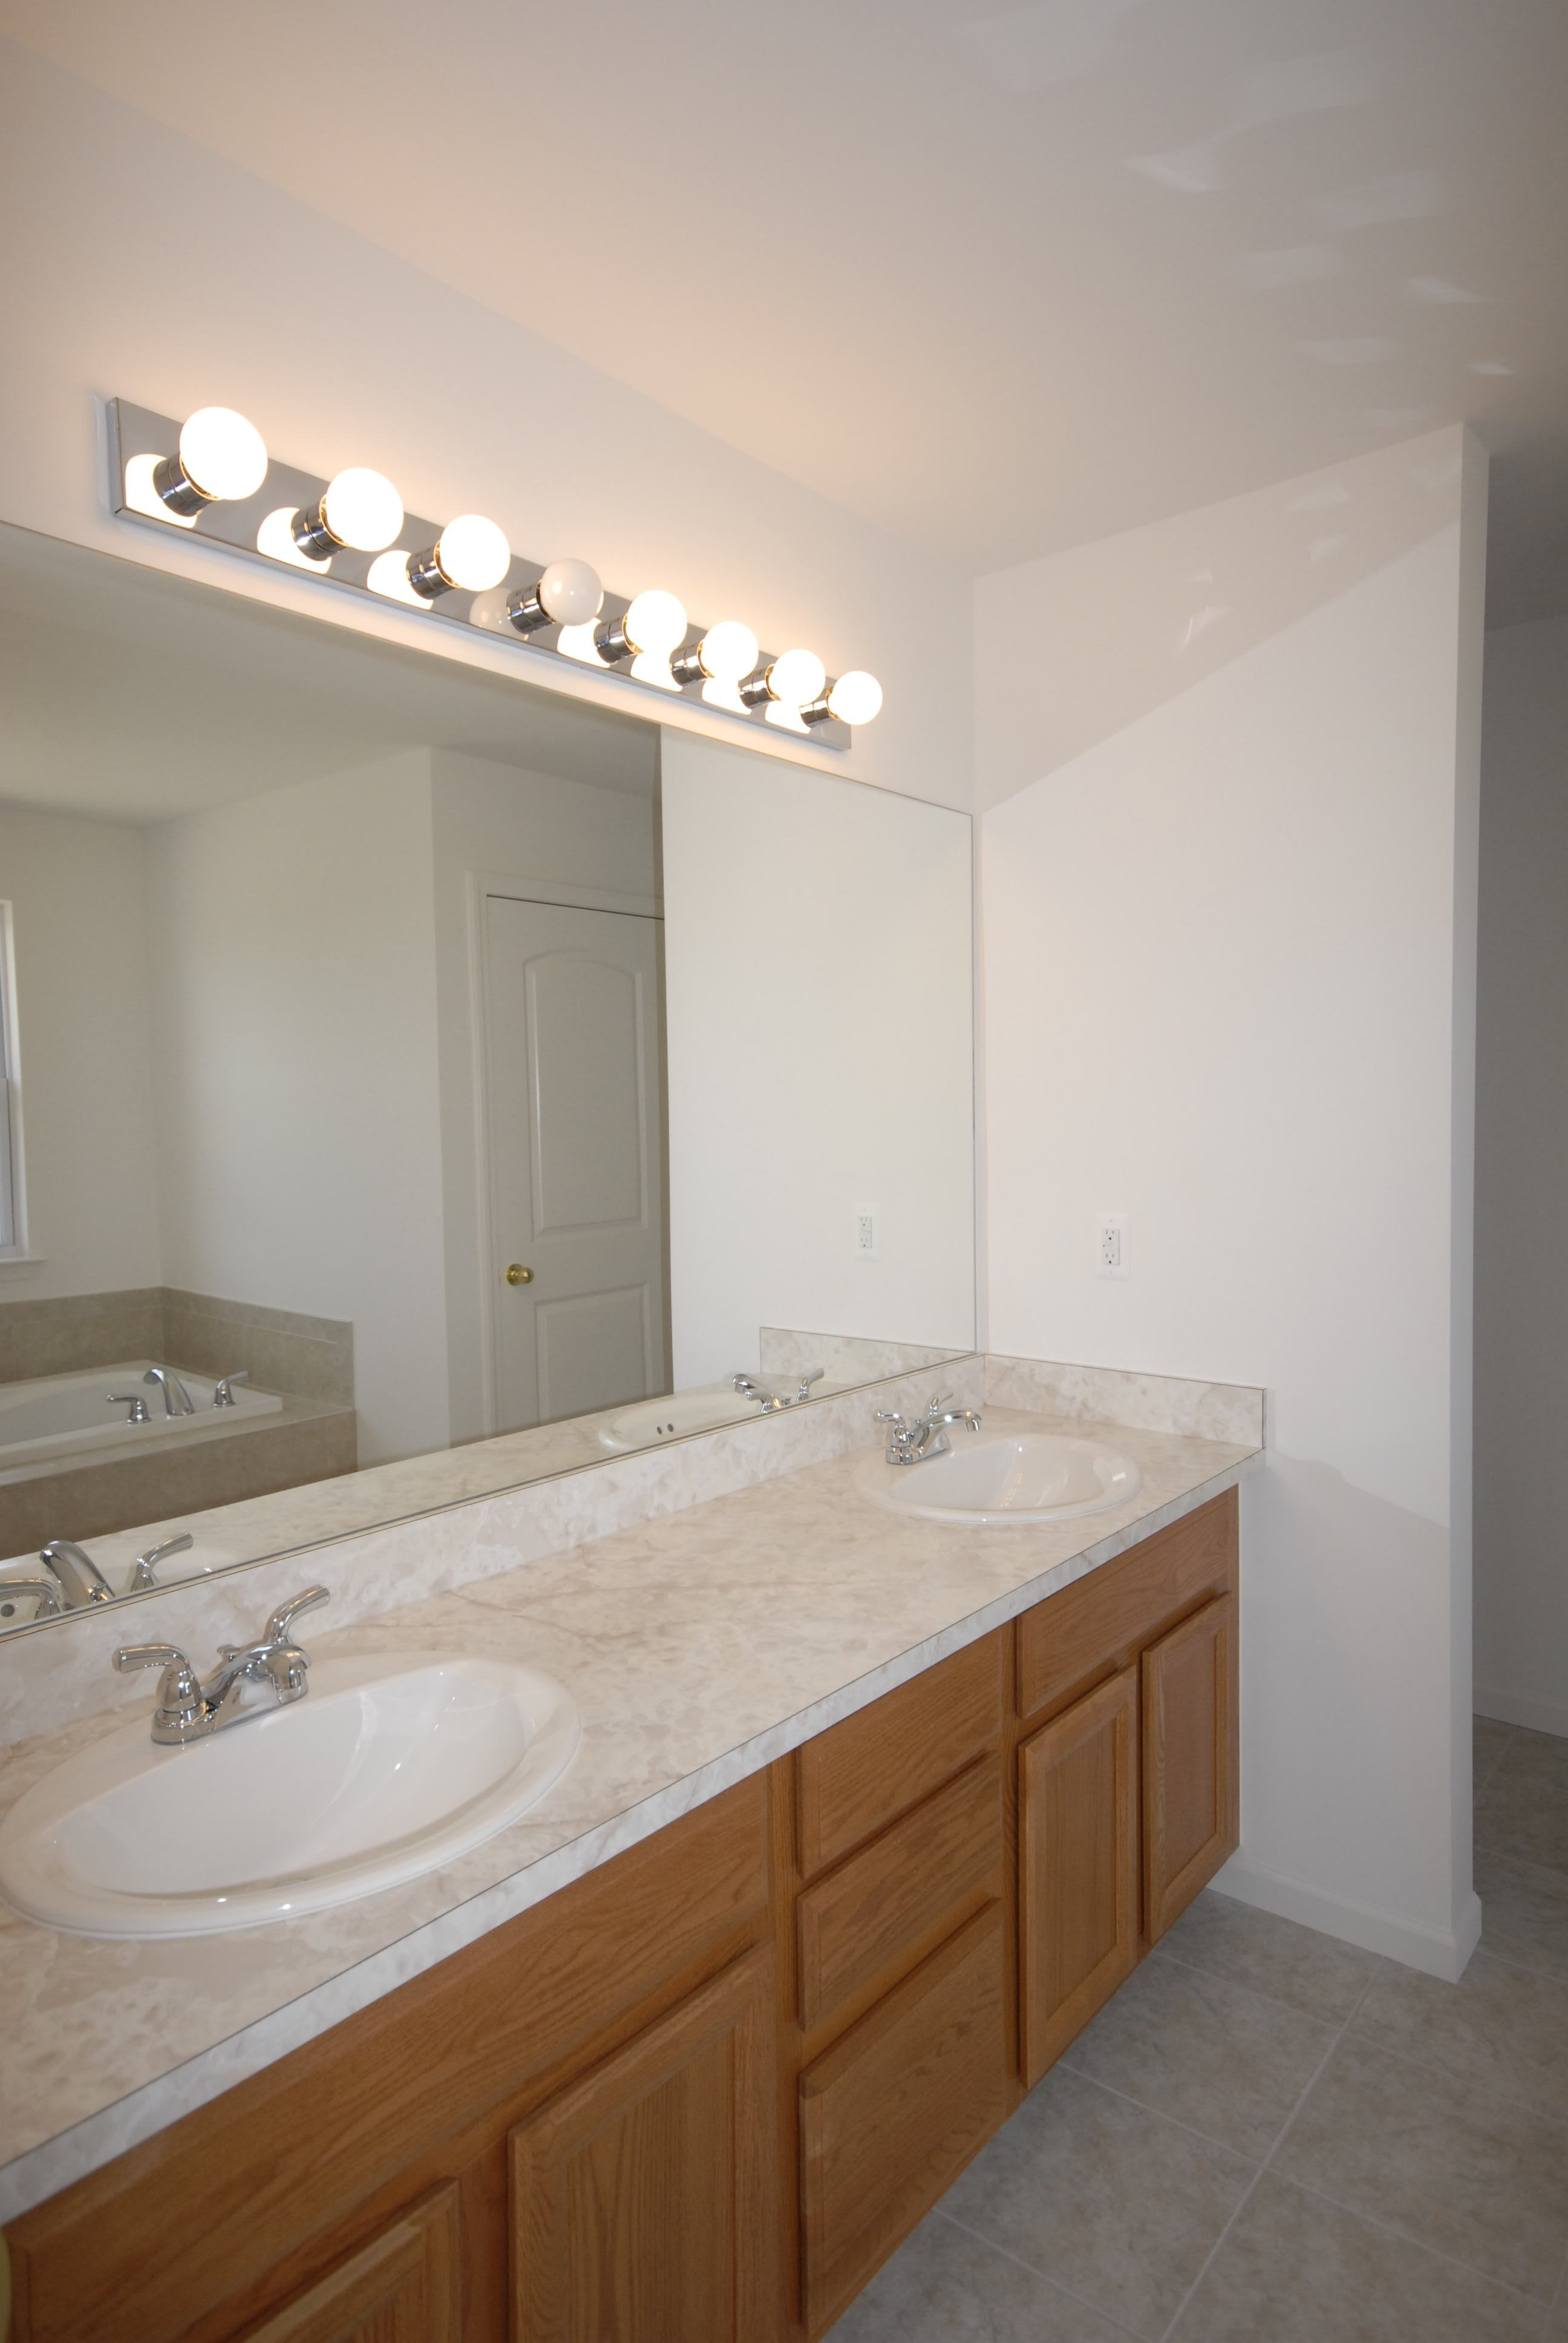 Bathroom featured in the Nantucket By Singh Homes in Detroit, MI